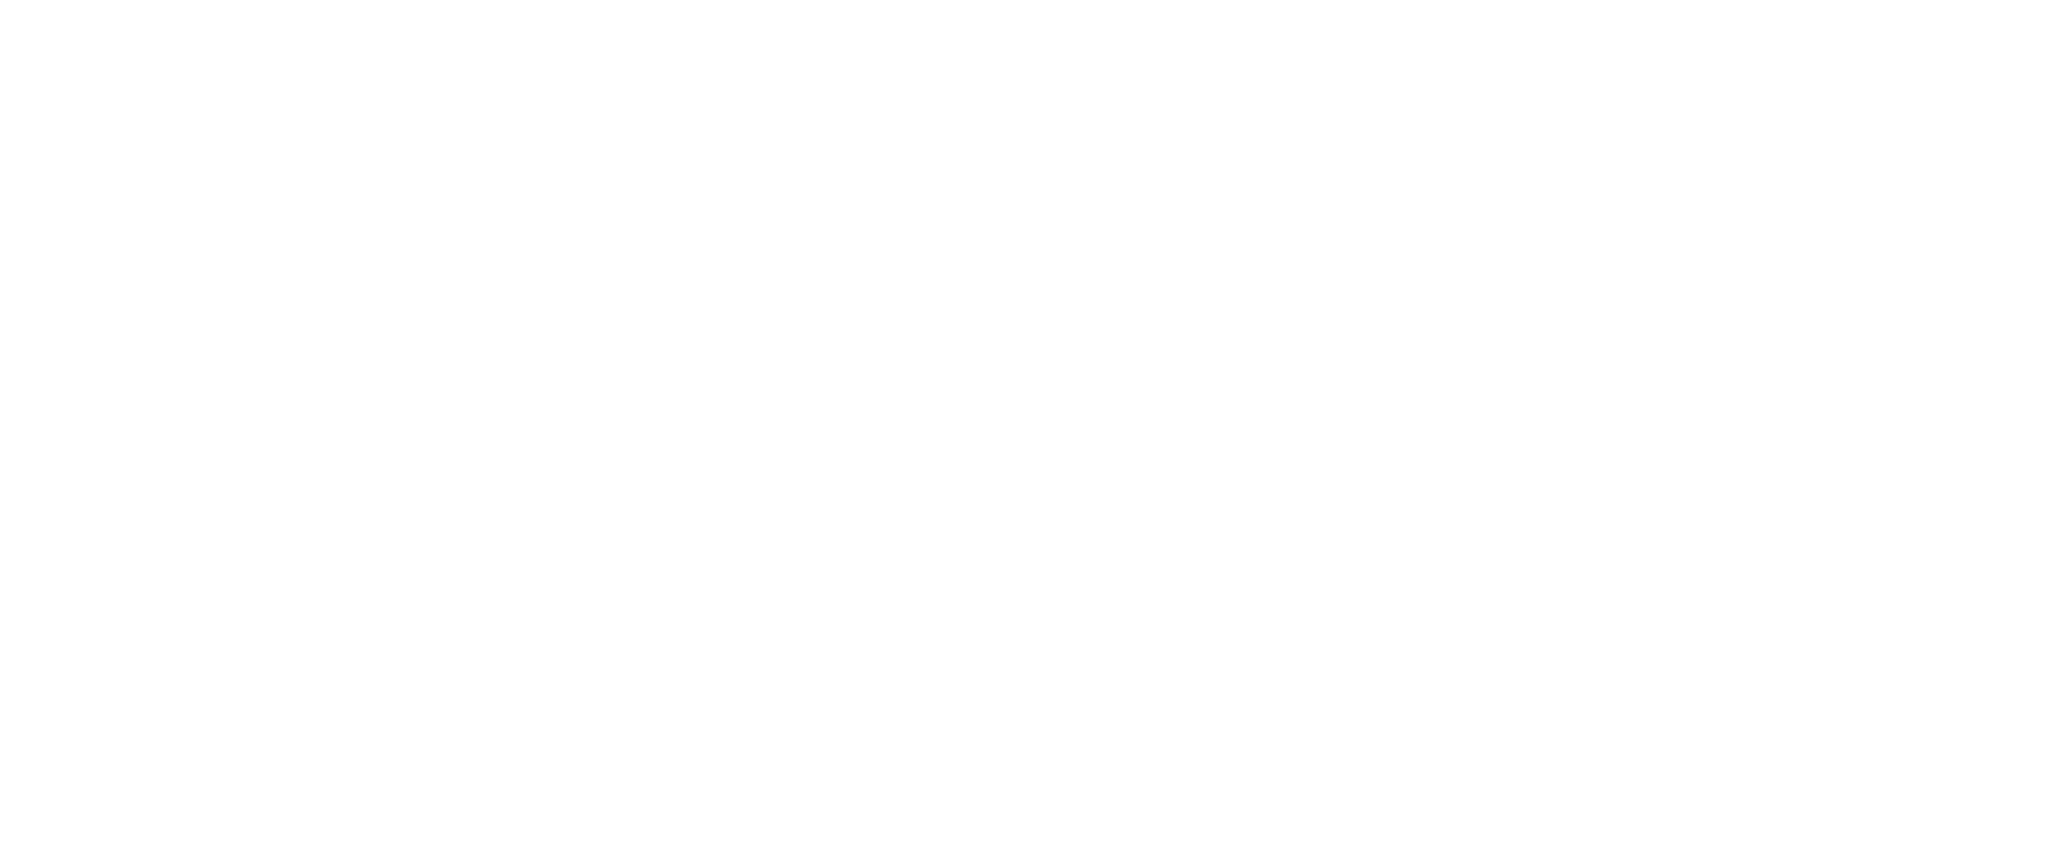 http://byronwritersfestival.com/wp-content/uploads/2021/05/Australia-Council-logo-white.png